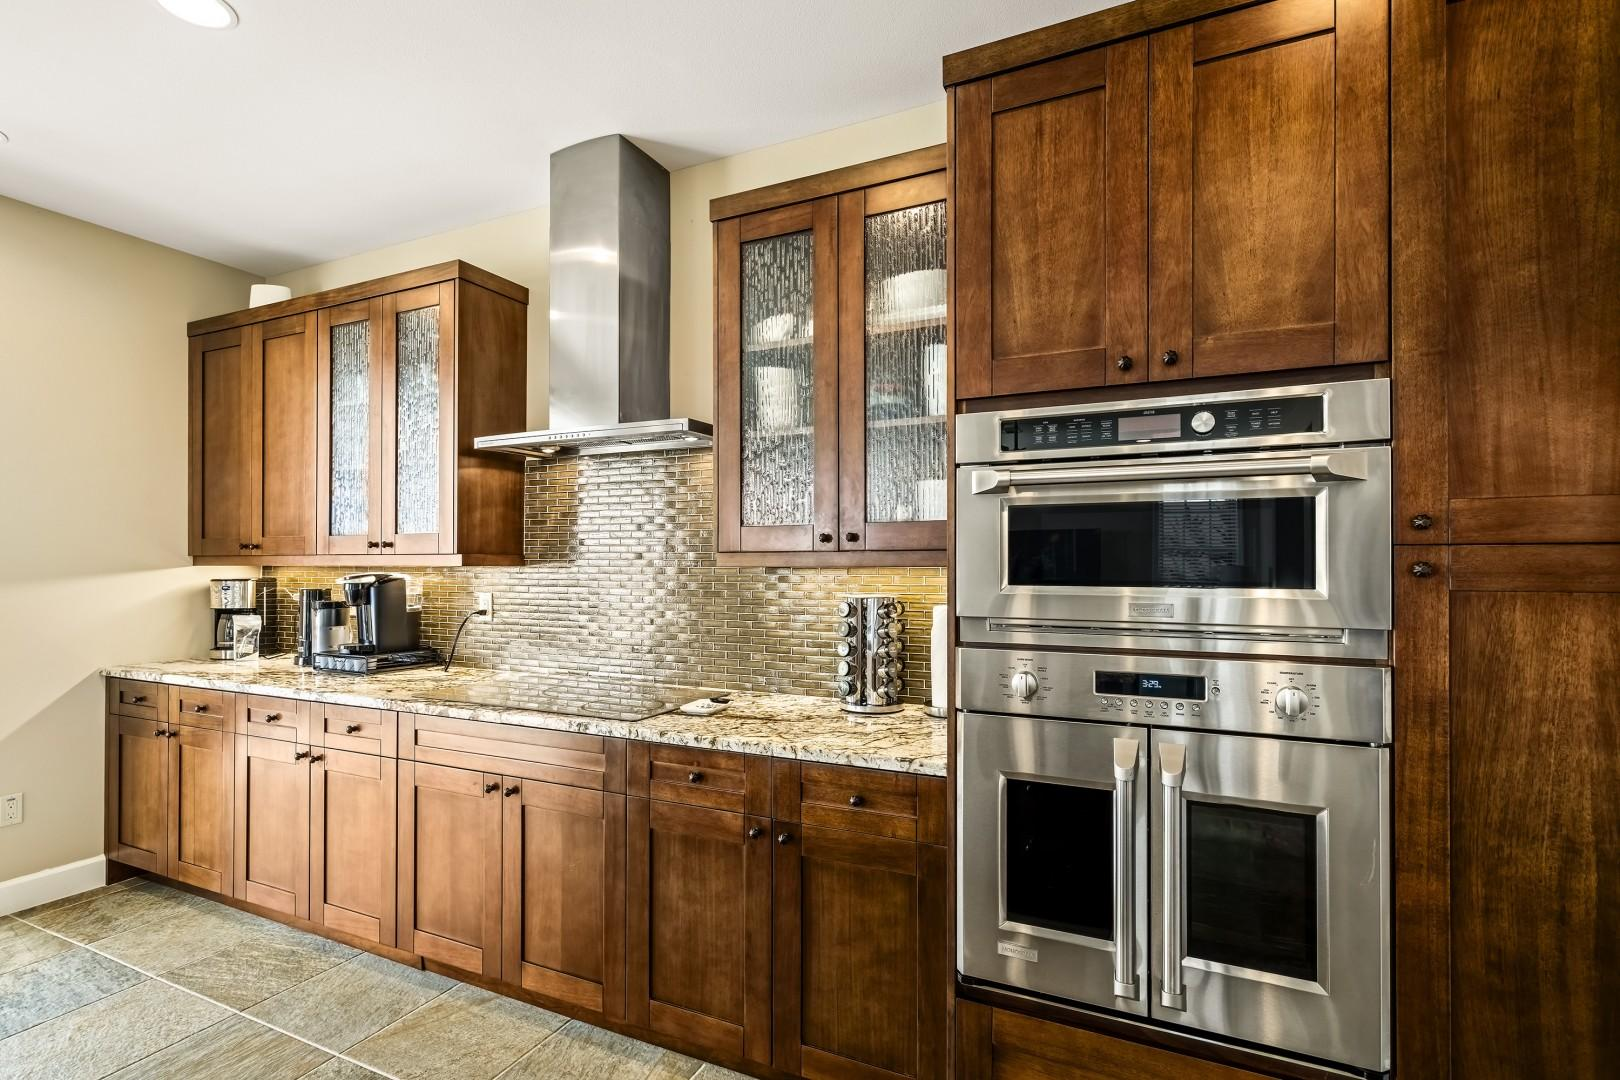 Granite counters throughout